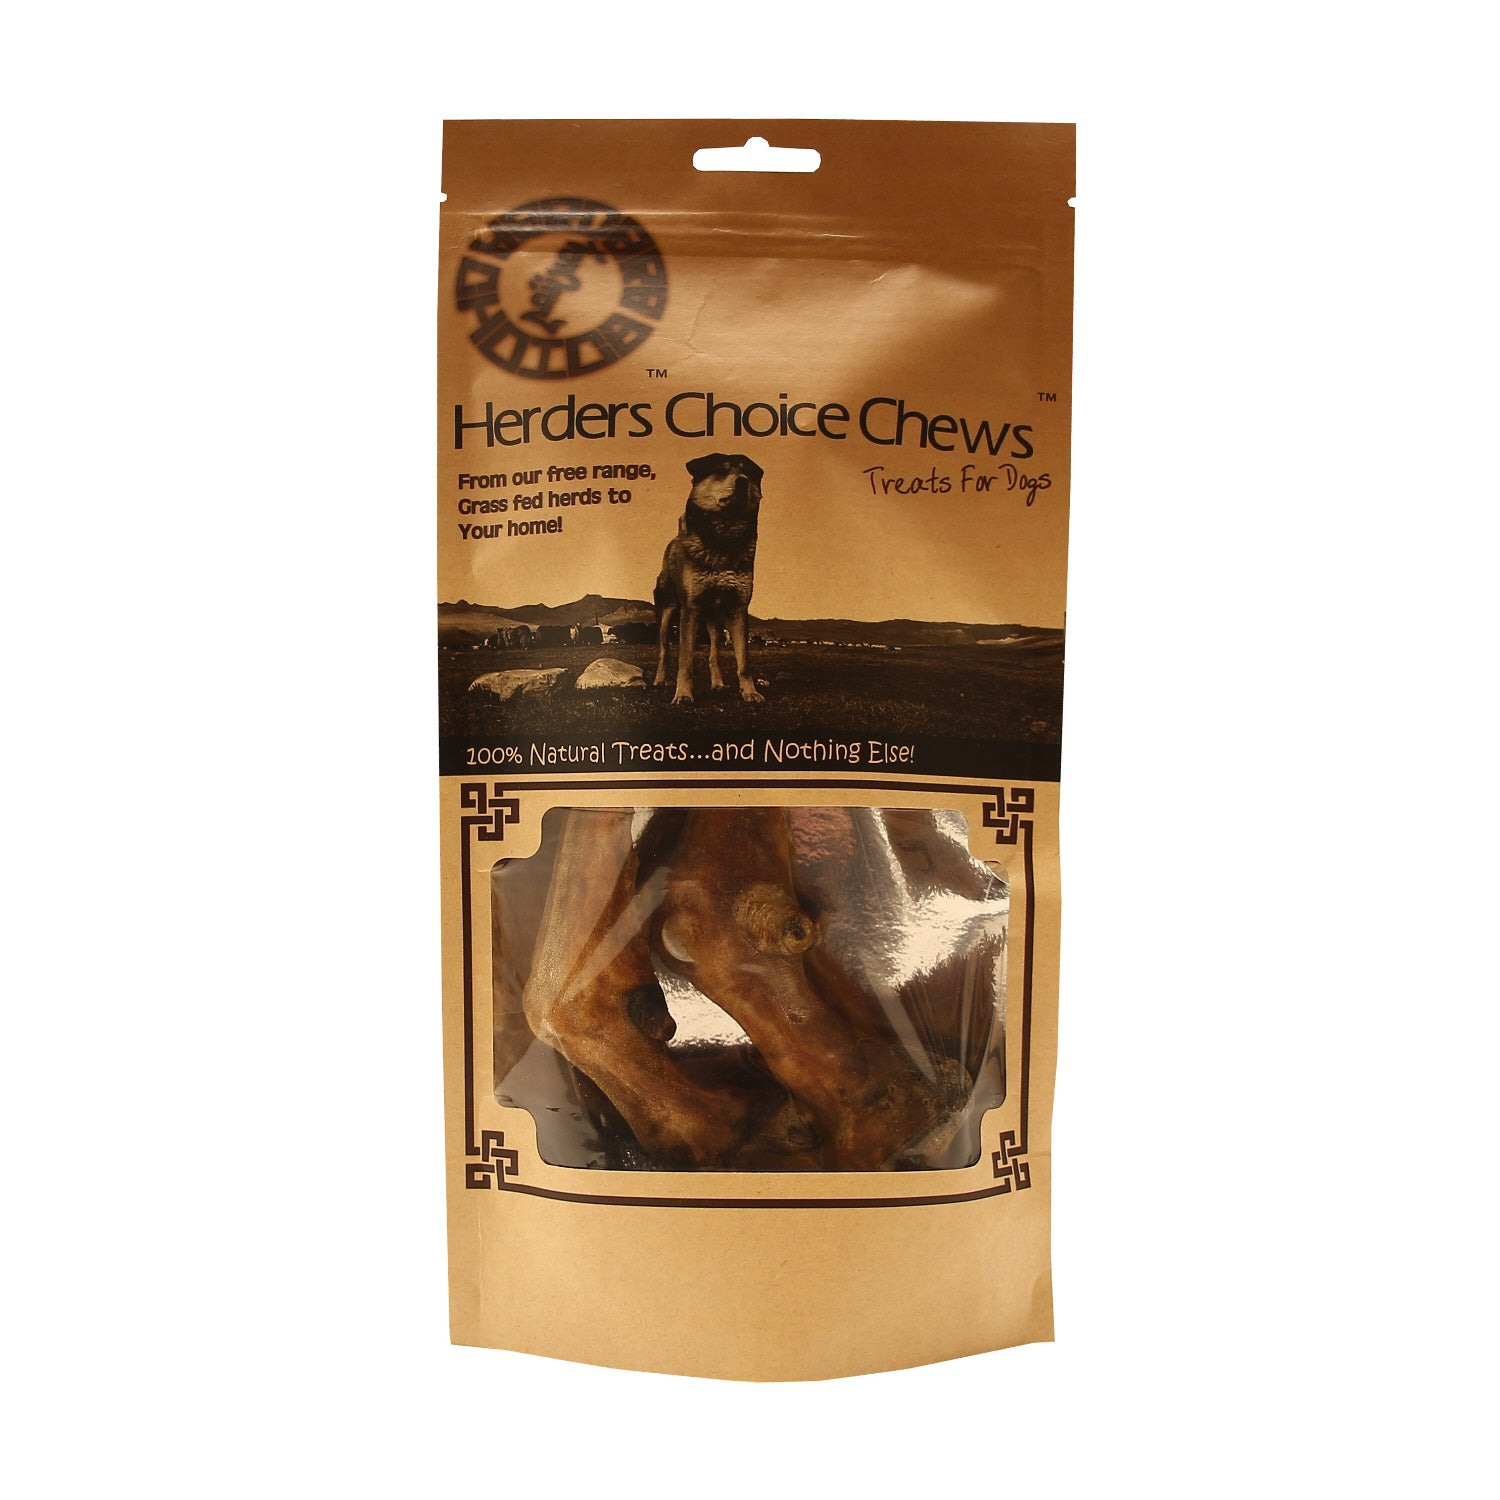 Herders Choice Chews Dried Sheep Legs 2 pcs.  Retail